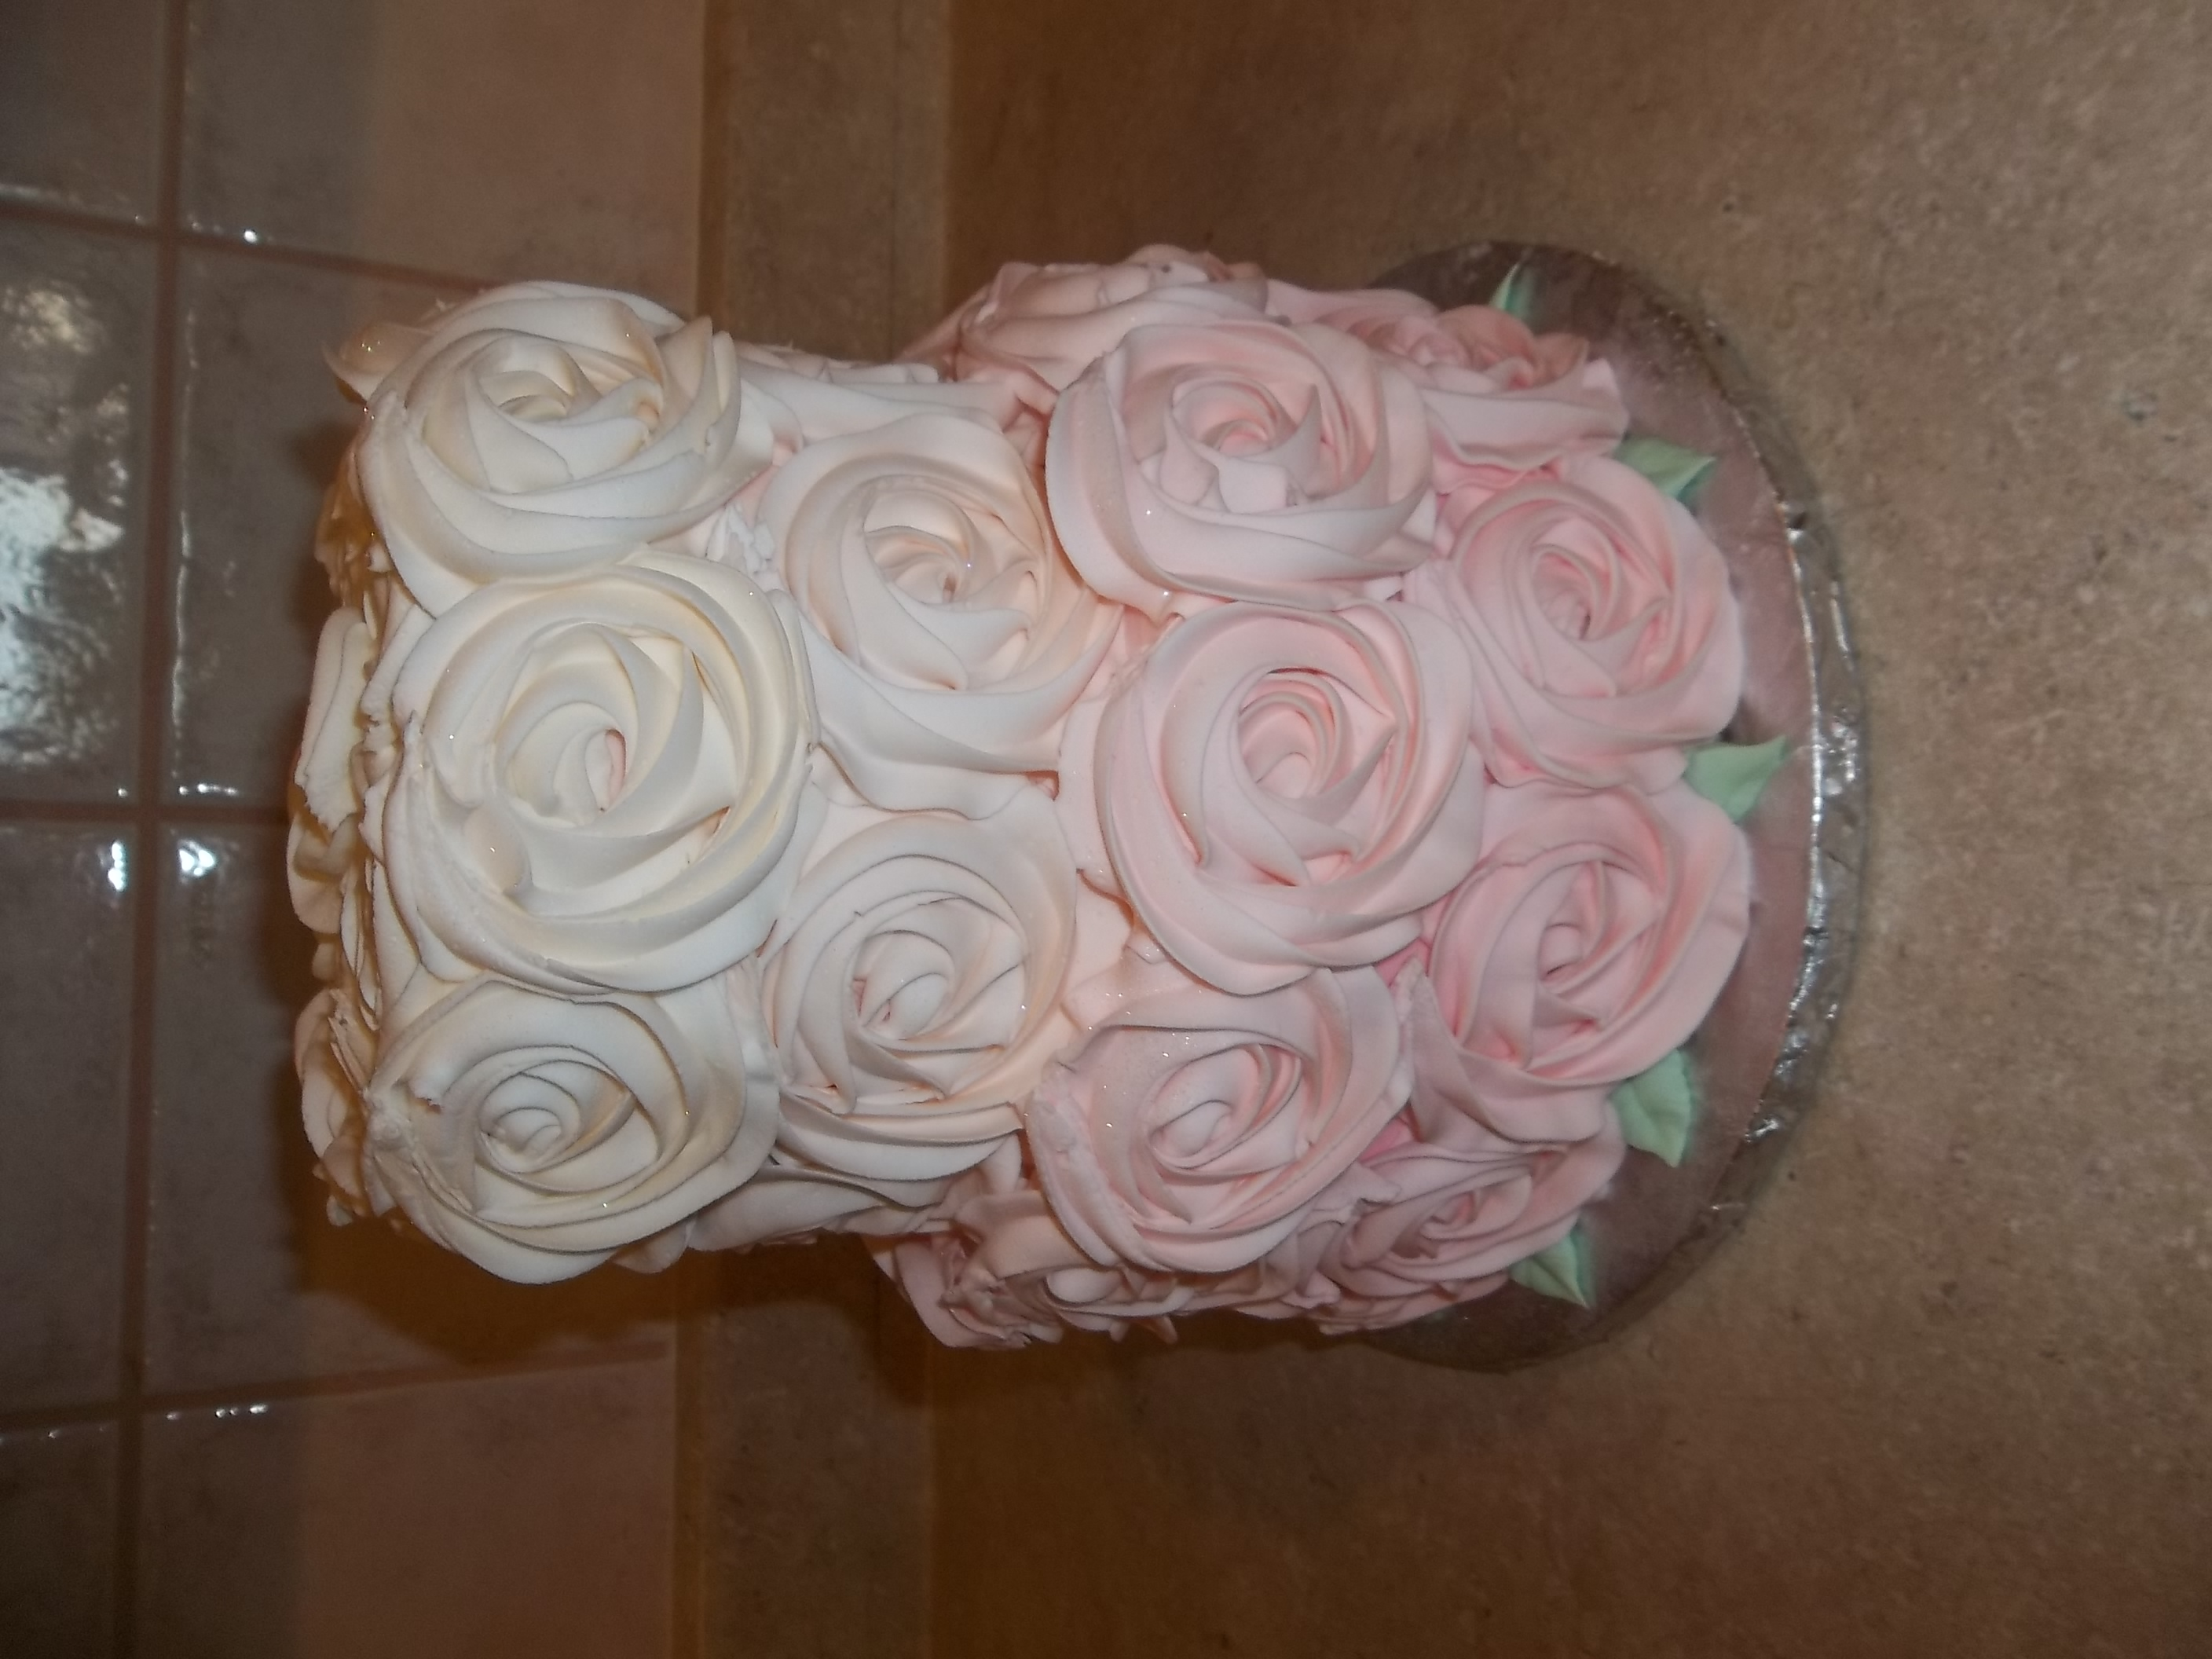 Rosettes in Pastels